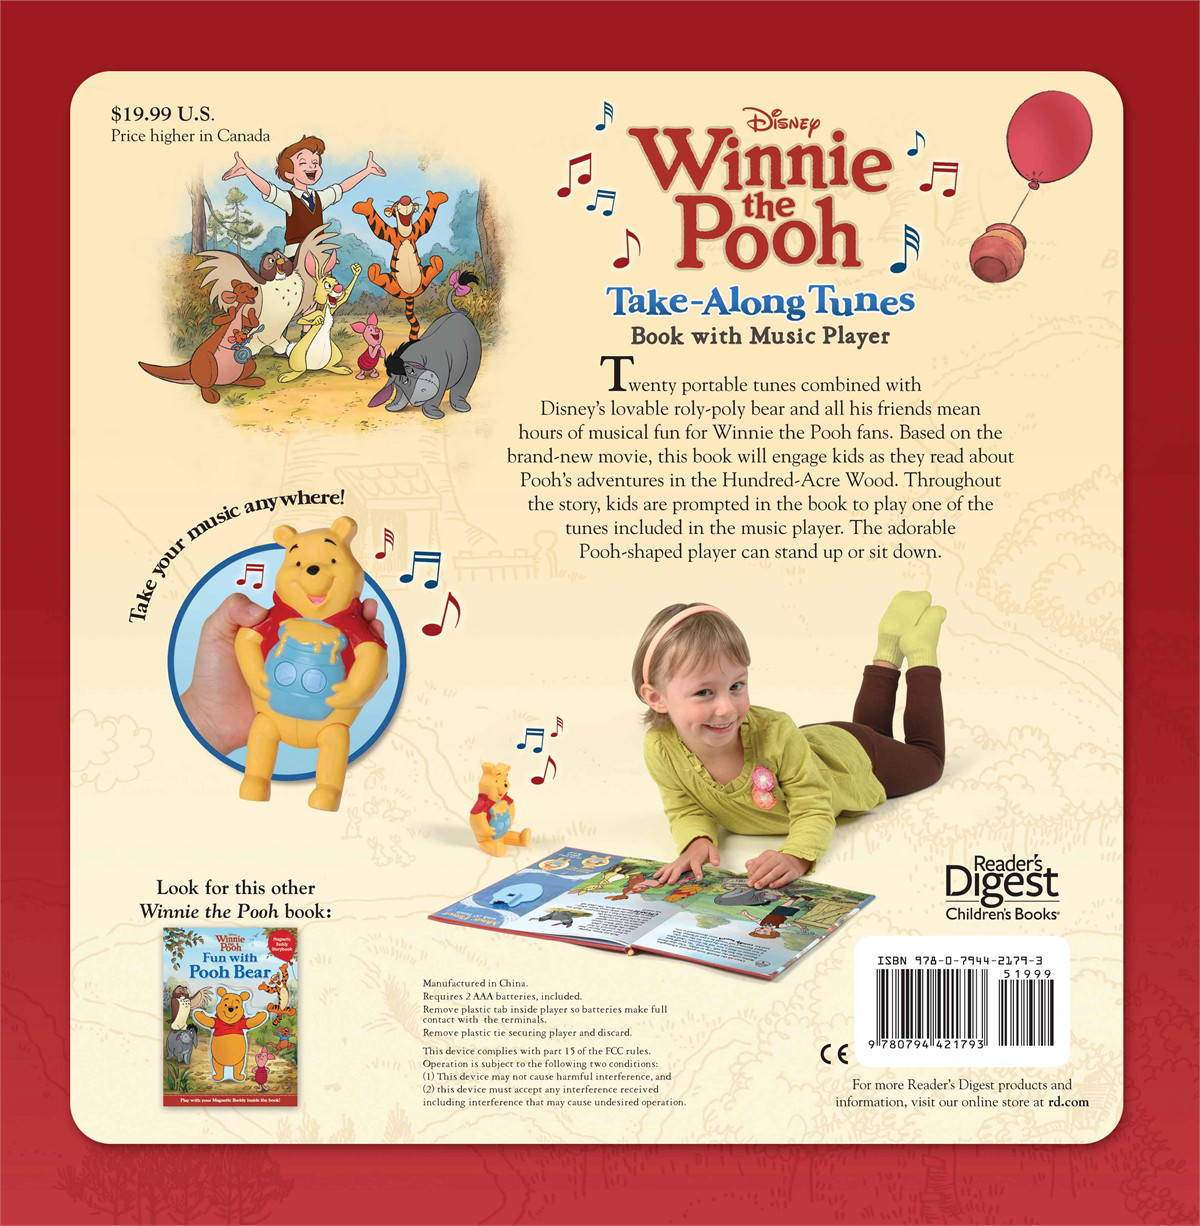 Winnie-the-pooh-take-along-tunes-9780794421793.in05